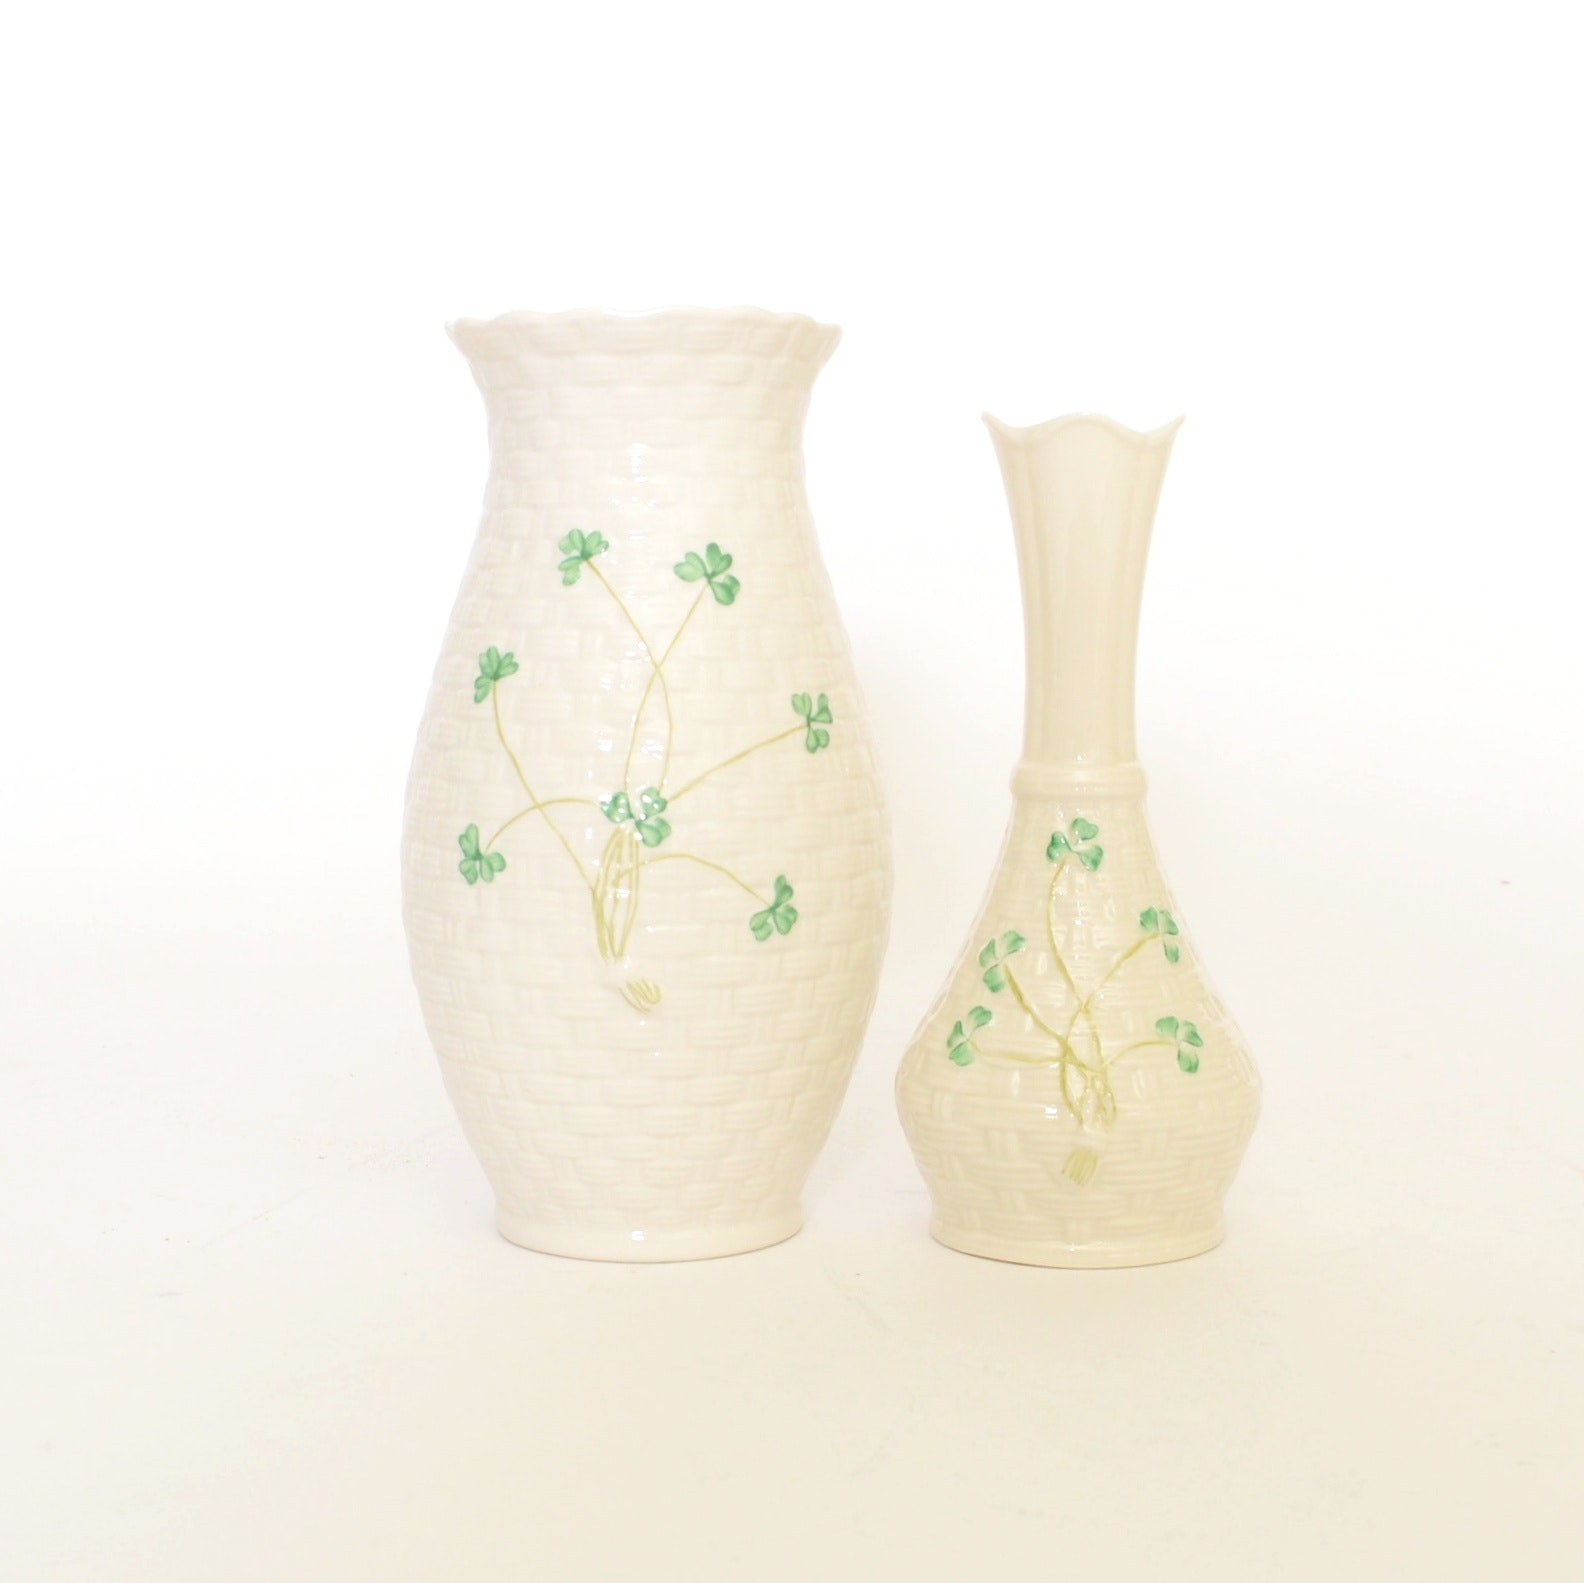 Pair of Belleek Shamrock Vases